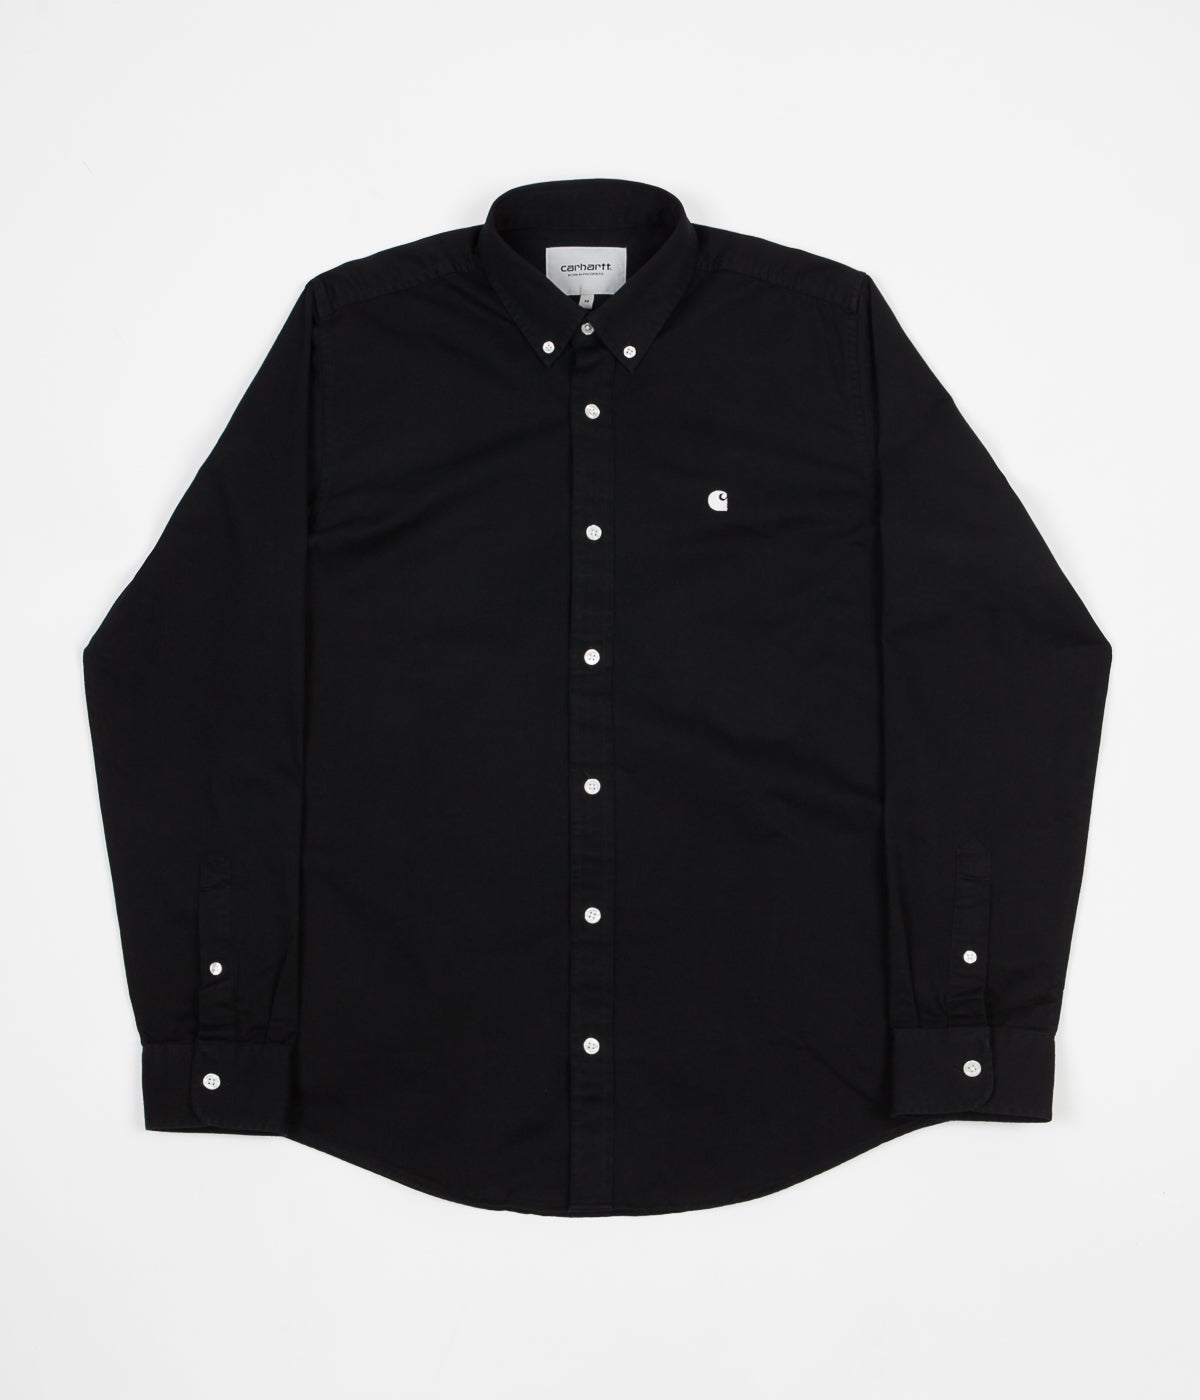 Carhartt Madison Shirt - Black / Wax